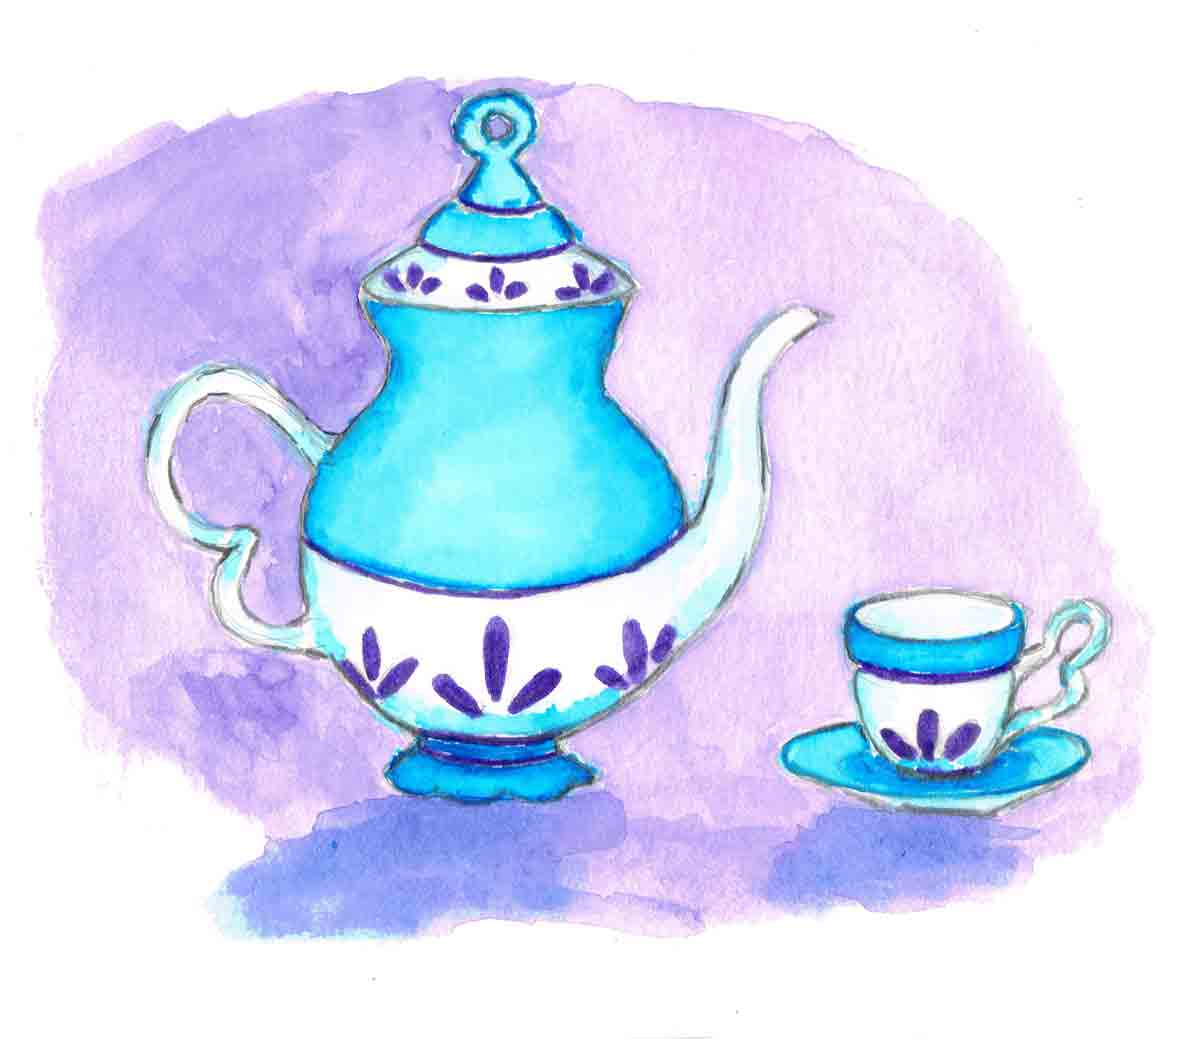 Tea-Time-No-12-turquoise-pot-and-cup-kw.jpg